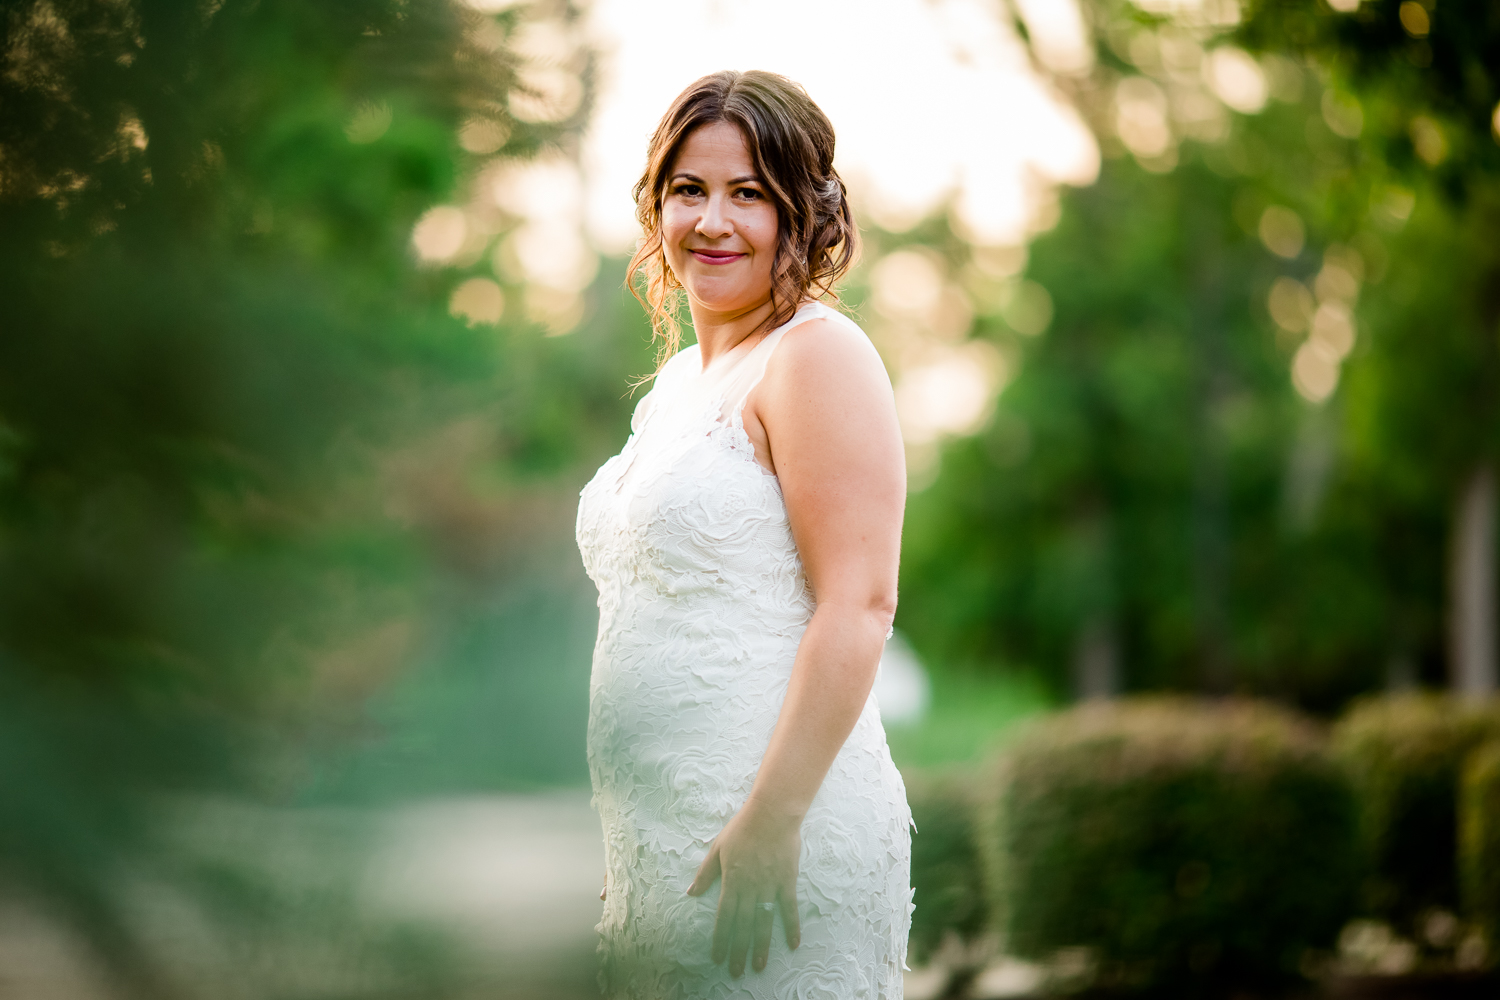 Bridal portrait. Bride is surrounded by trees.